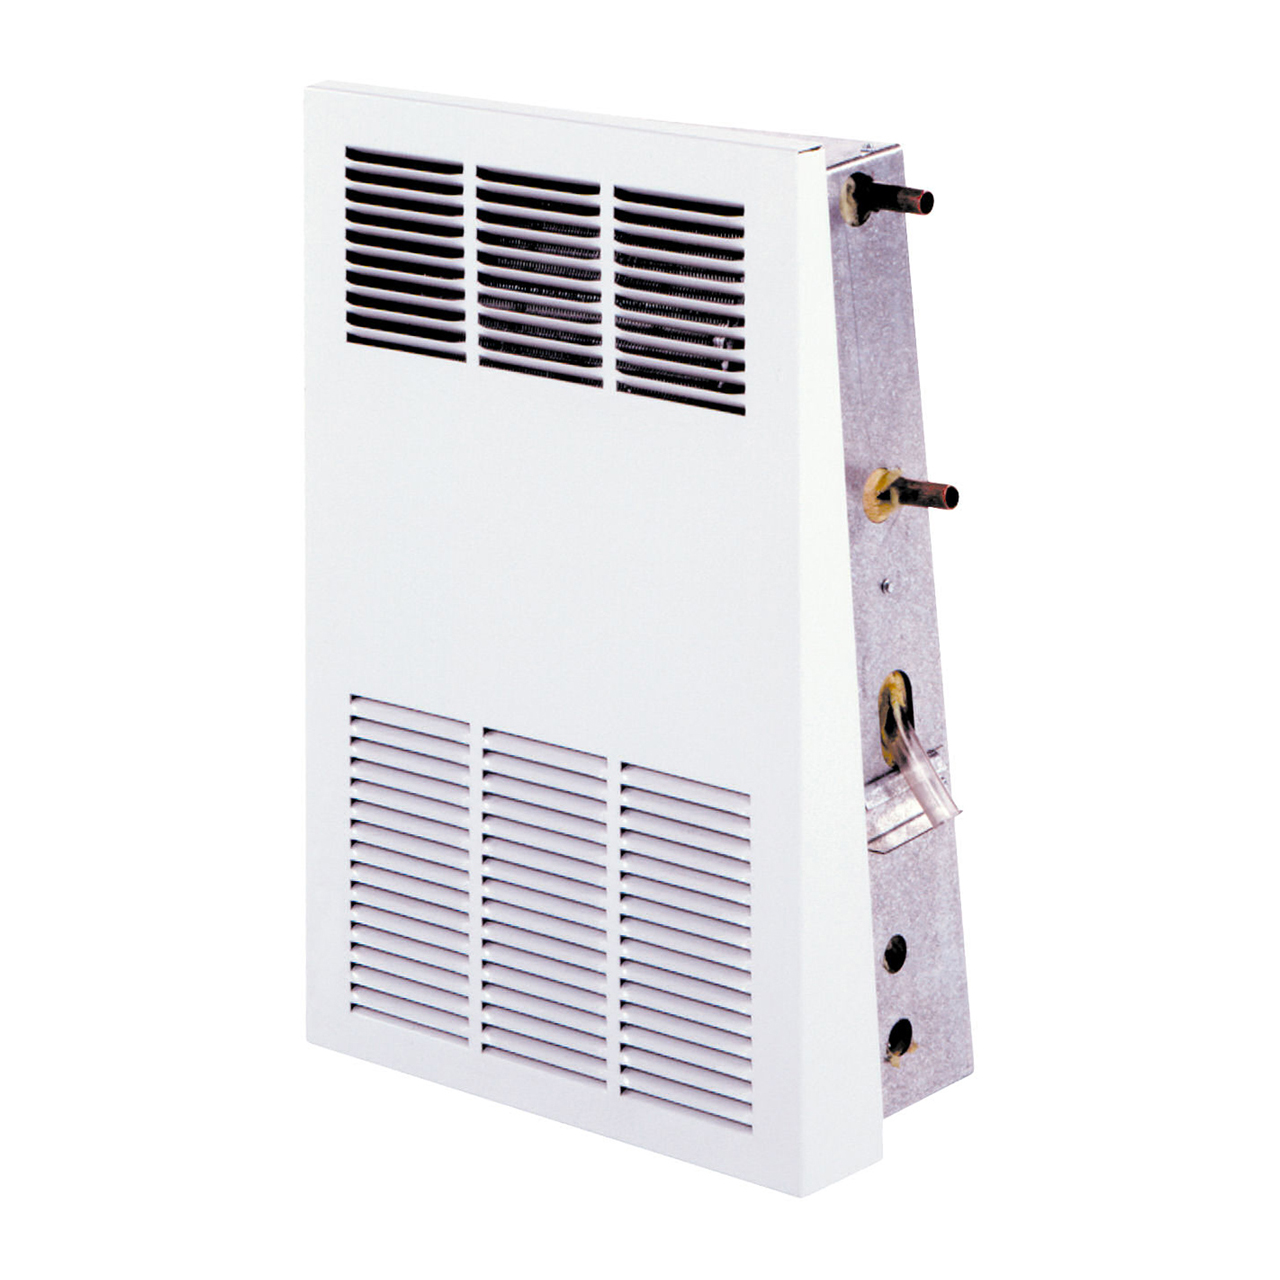 carrier-42VG-furred-in-wall-vertical-fan-coil